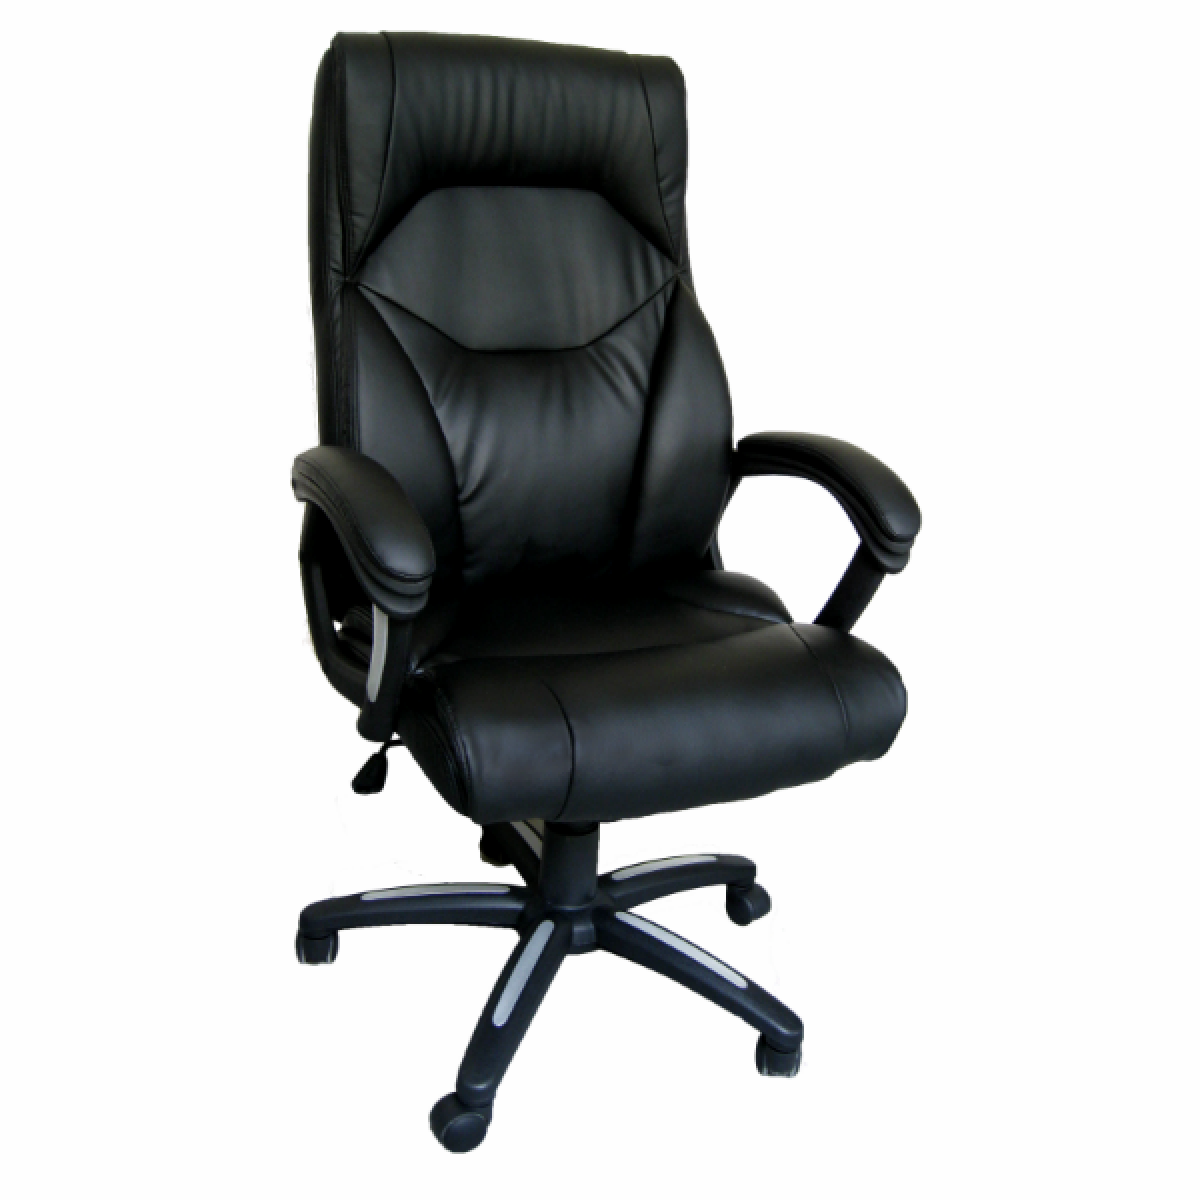 Executive Office Furniture: Eliza Tinsley Wellington Executive Office Chair BCP/T102/BK